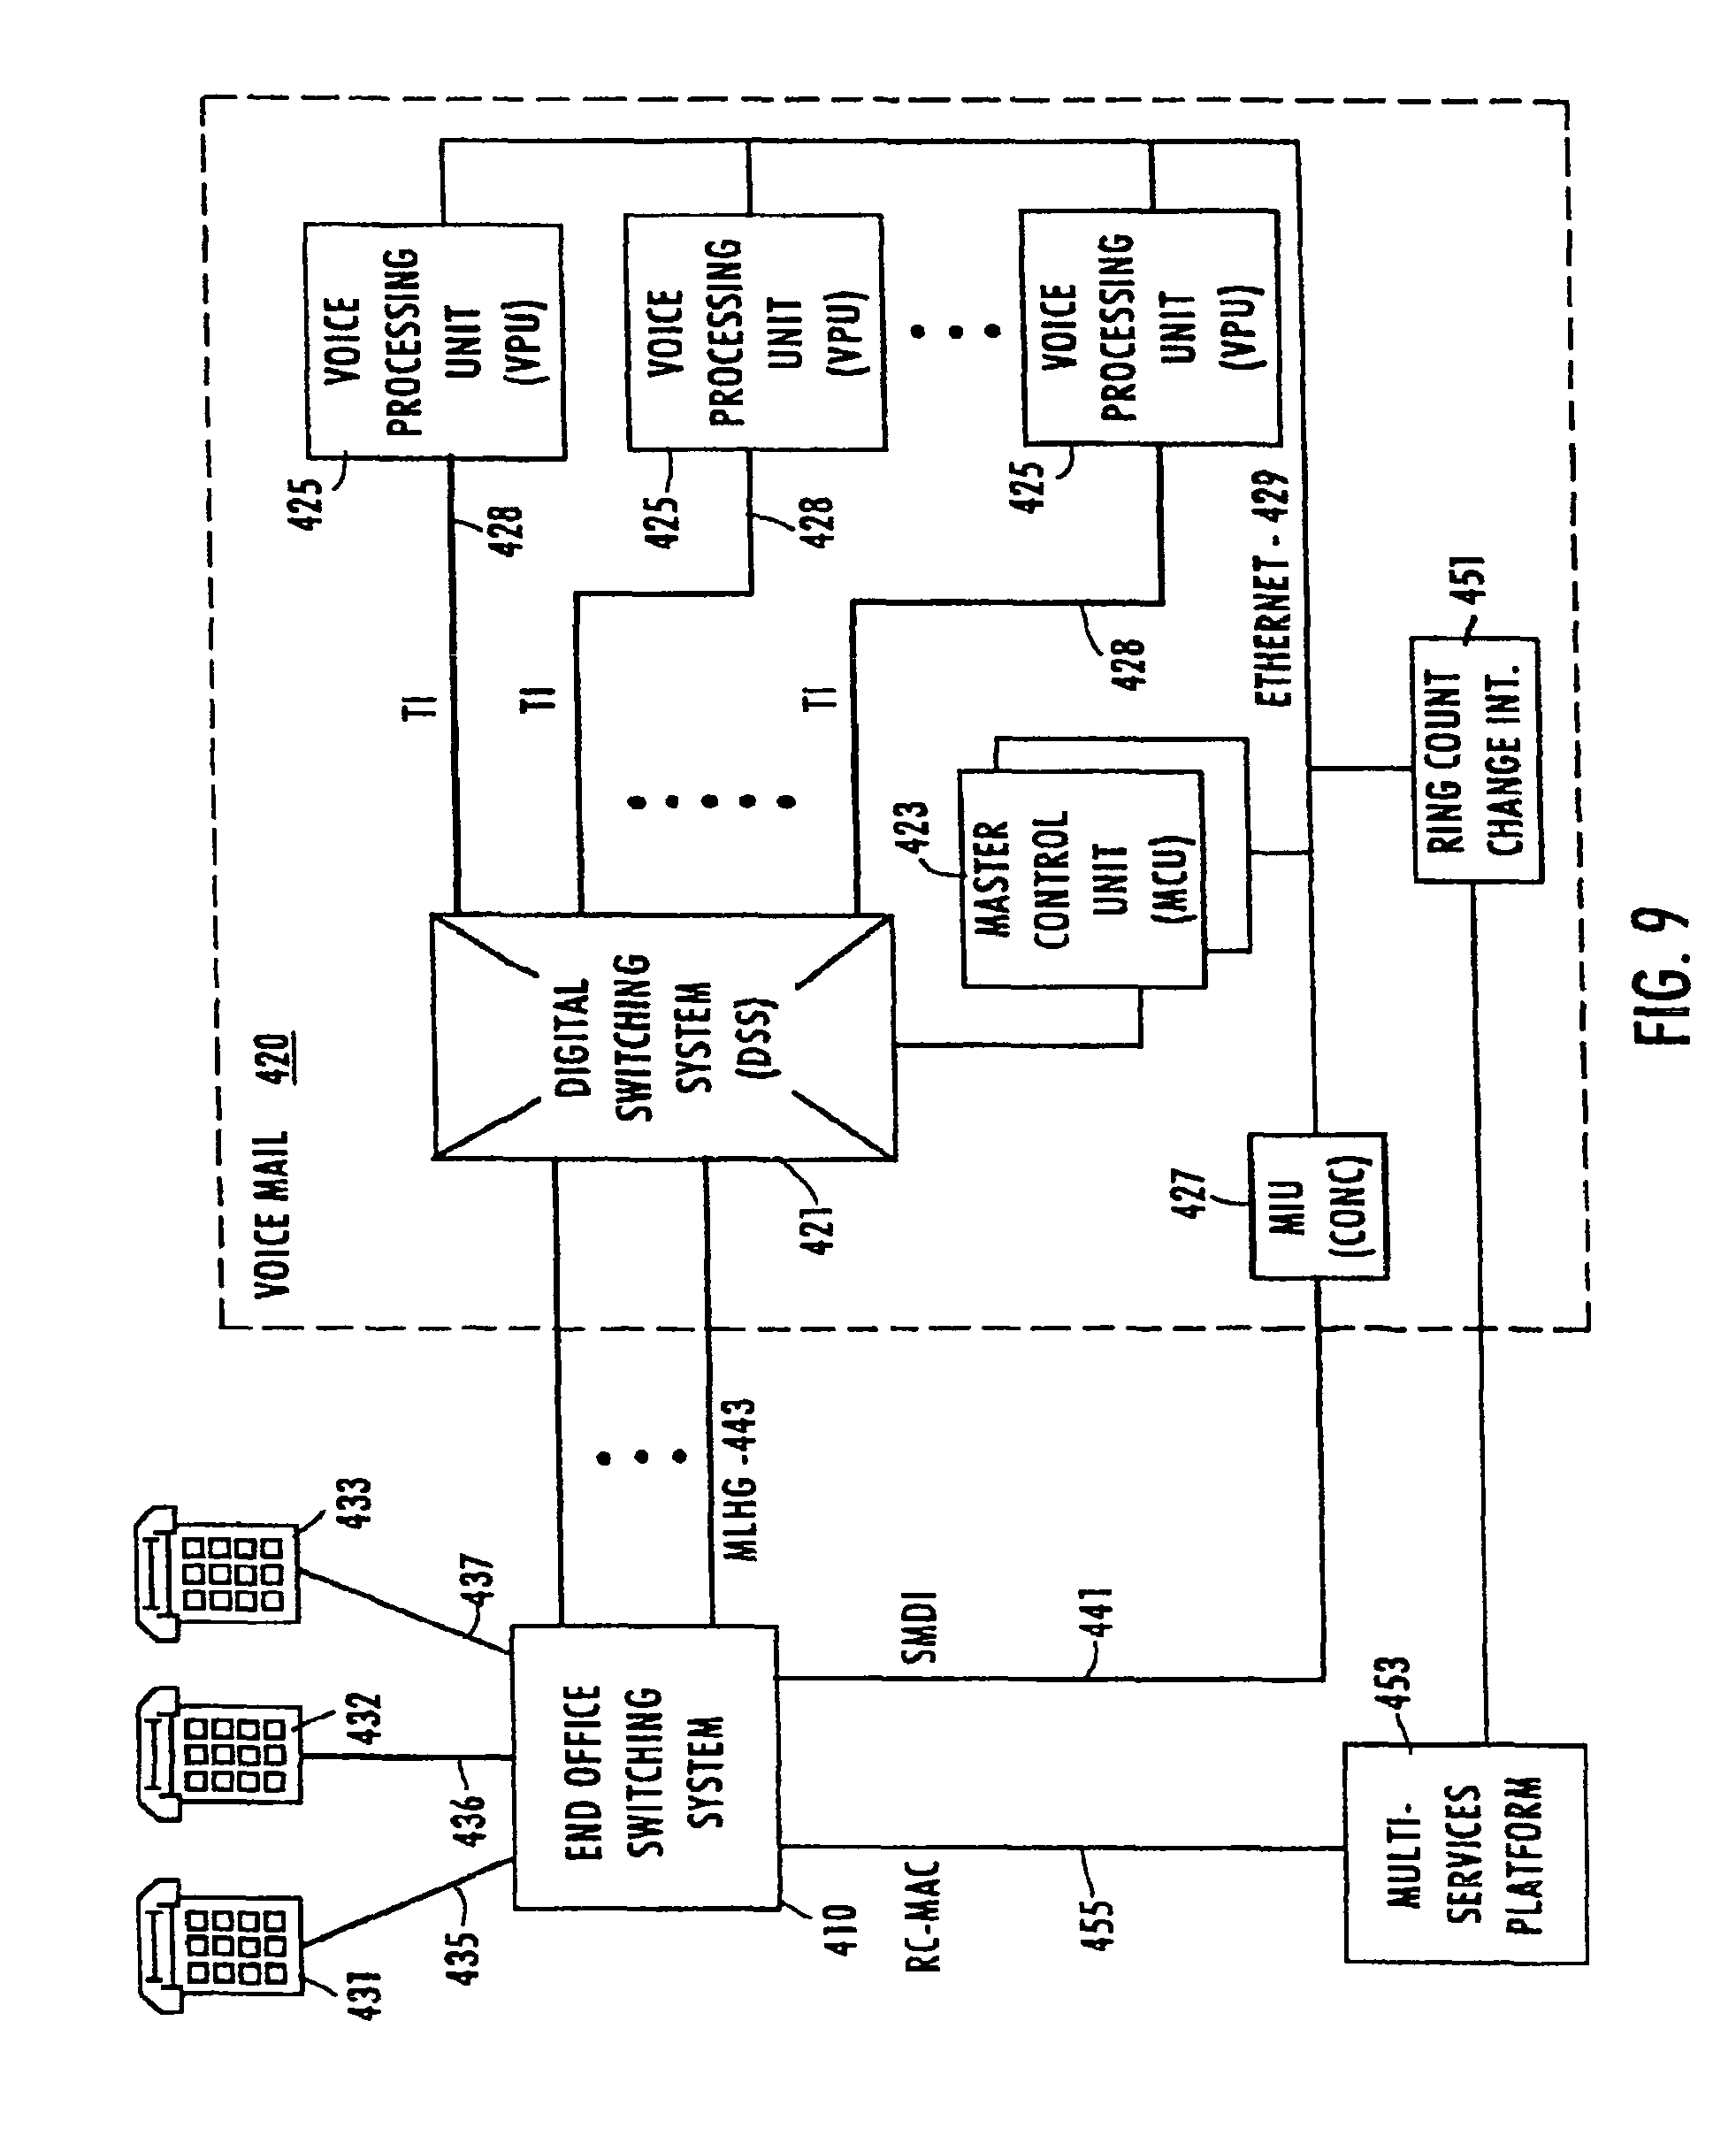 Patent Us8553681 Telephone Service Via Packet Switched Networking The Tcp Ip Guide Circuit Switching And Networks Drawing